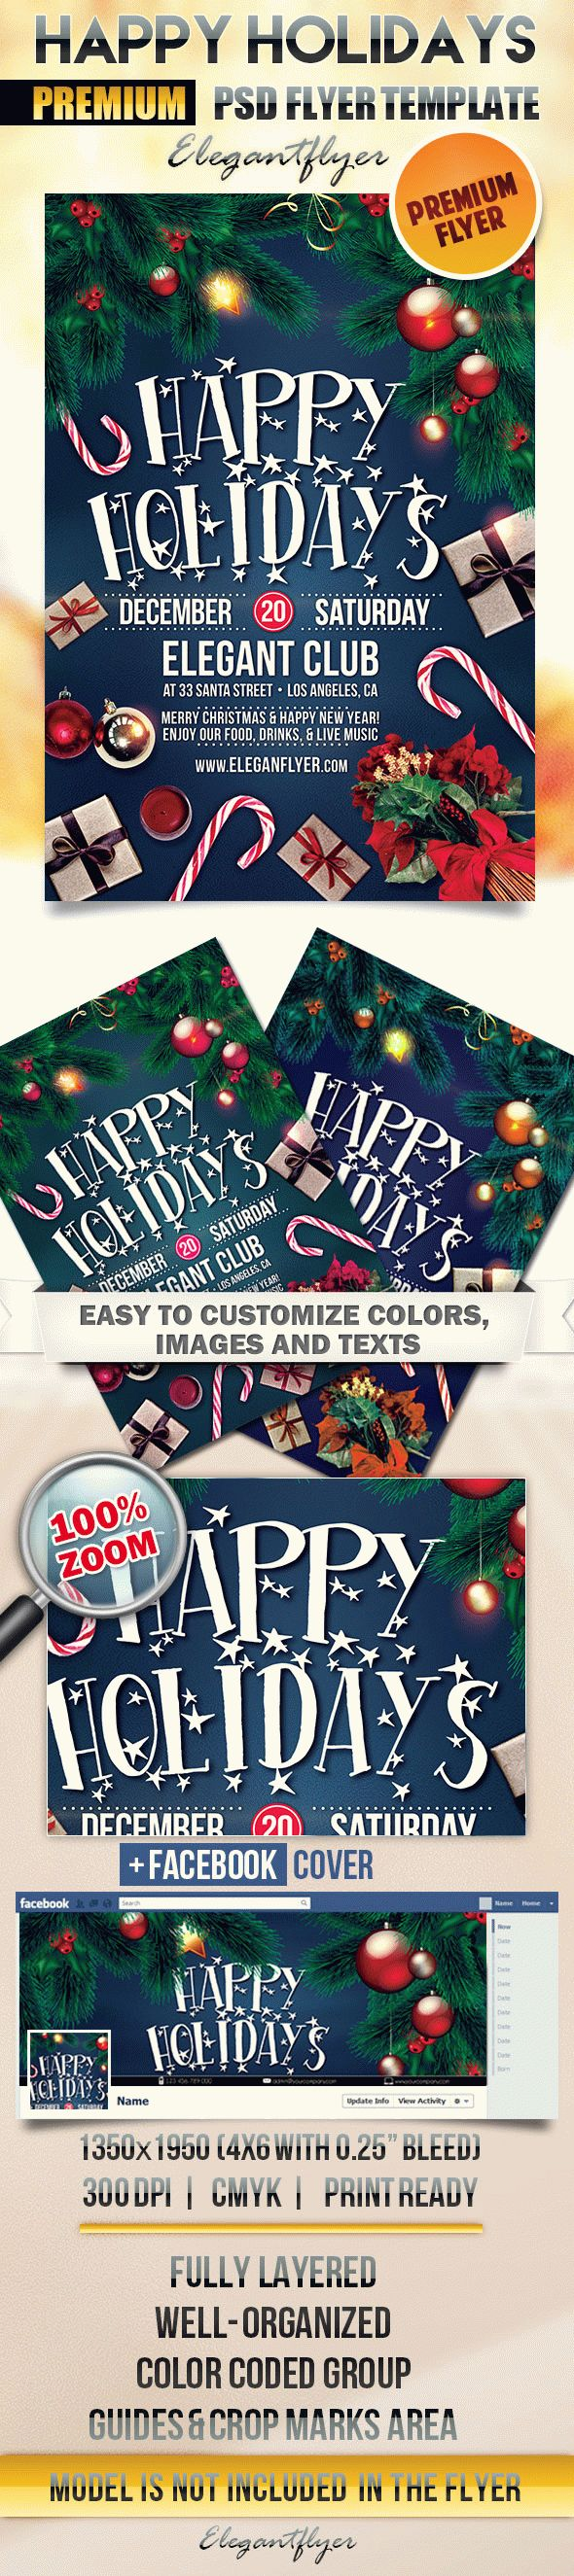 Happy Holidays Flyer Template Free Eve Flyers Prev Next